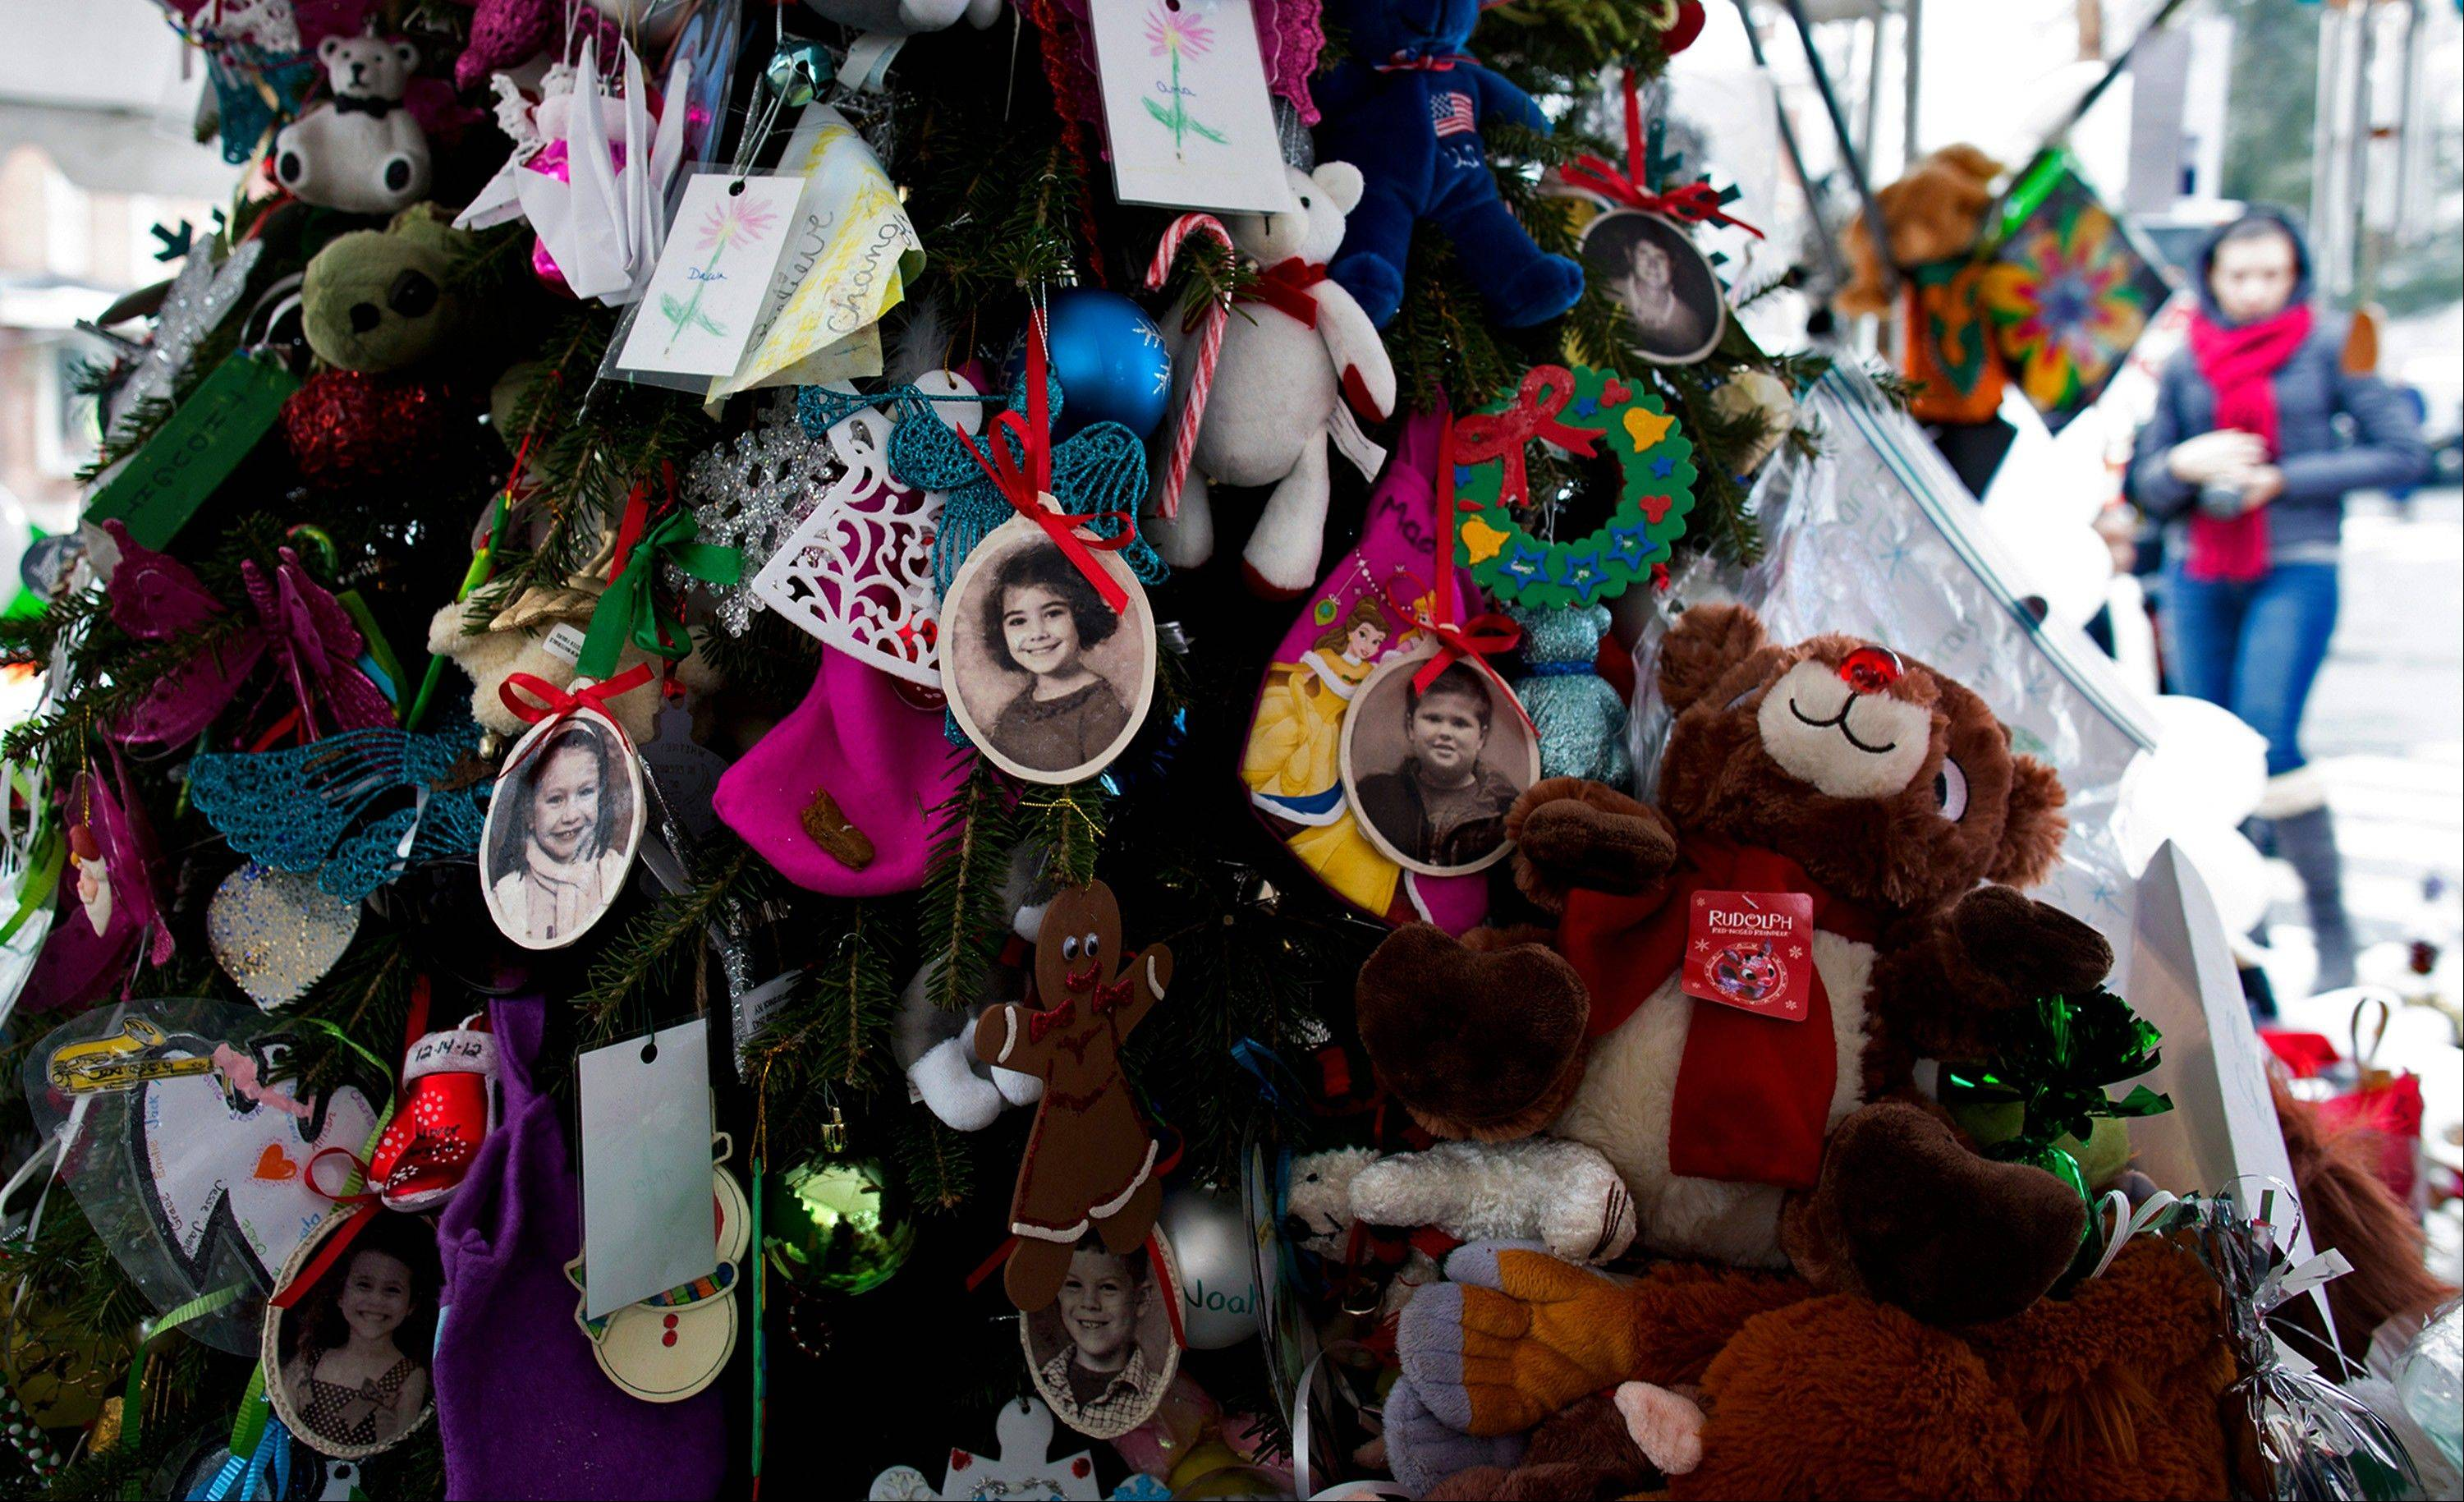 Portraits of slain students and teachers hang from a tree at a memorial in Newtown, Conn. On Saturday morning, 15 days after the shooting deaths, the mementos were removed.